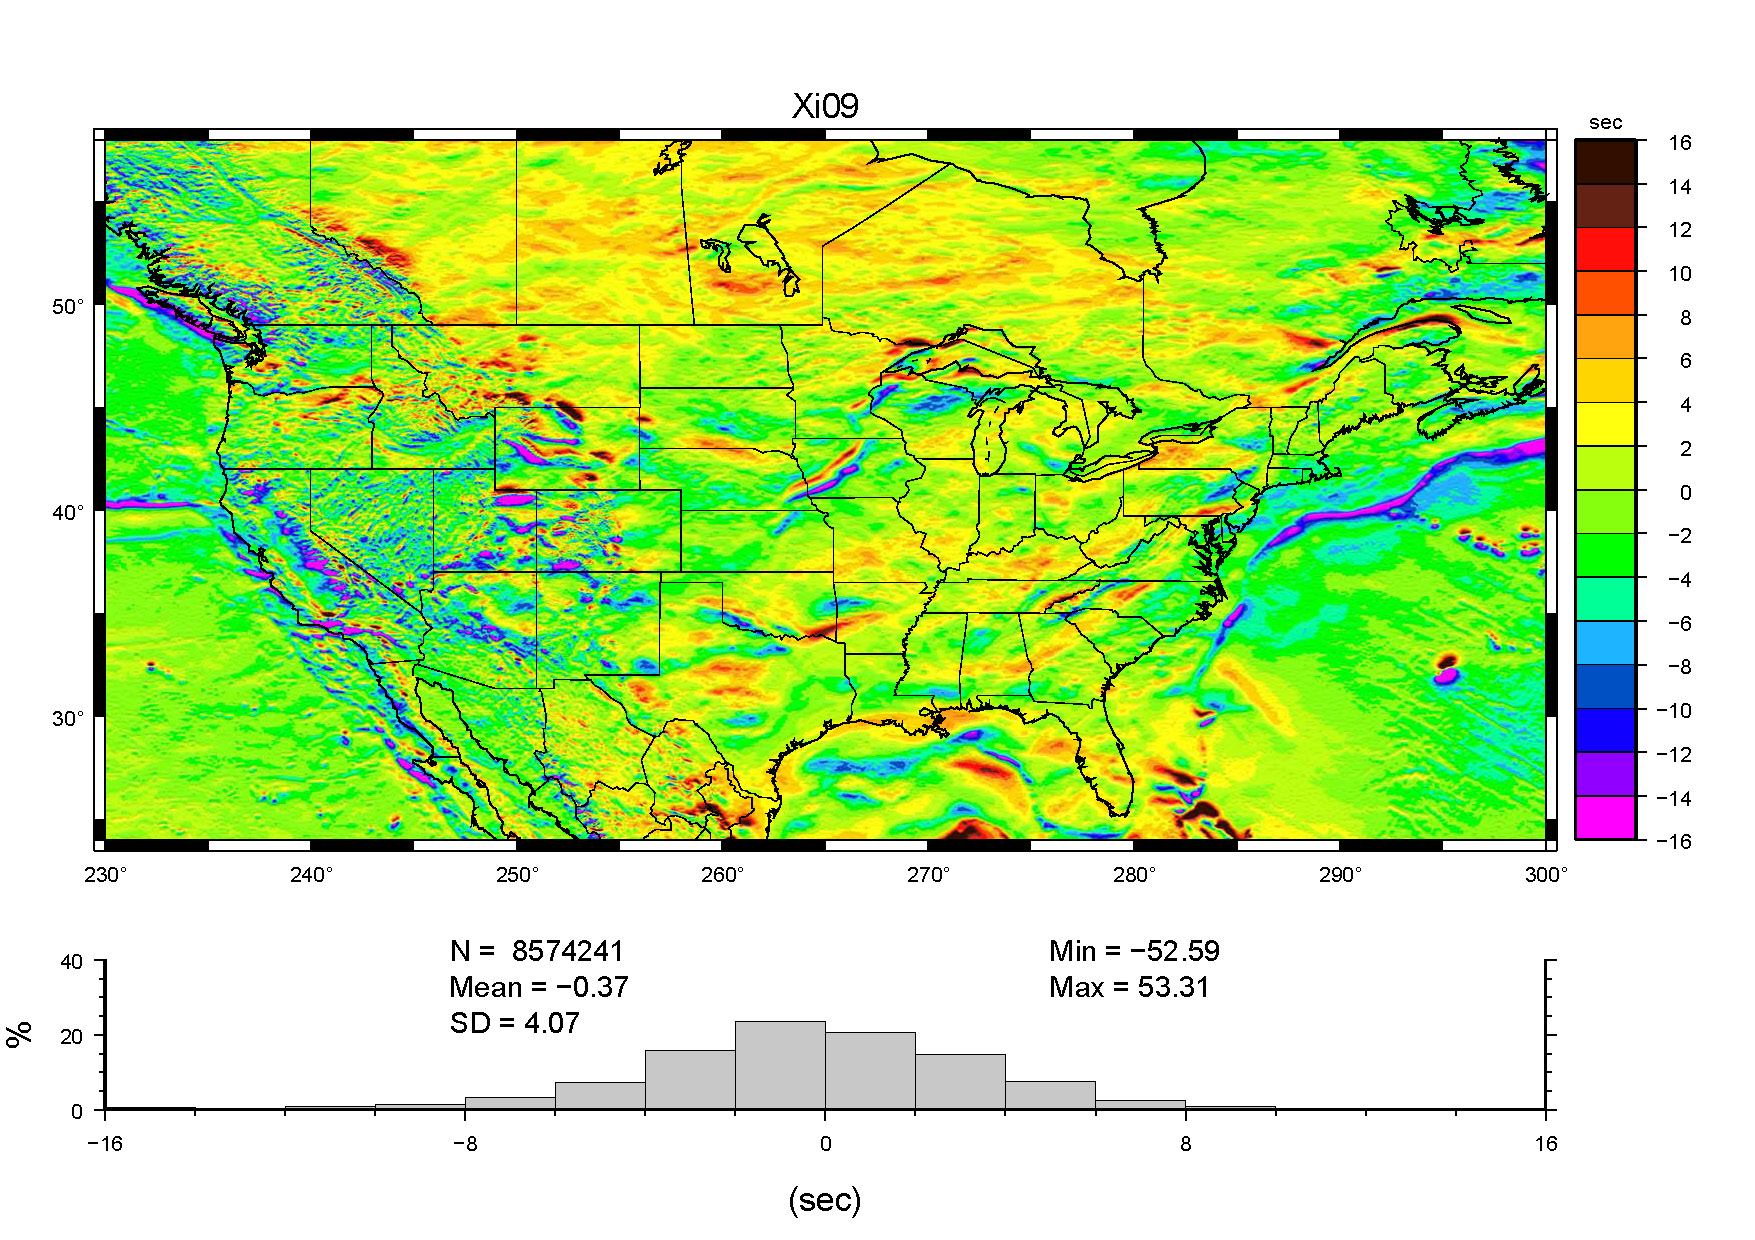 A color coded model of vertical deflections           across the conterminous United States.            See the text above for further description.